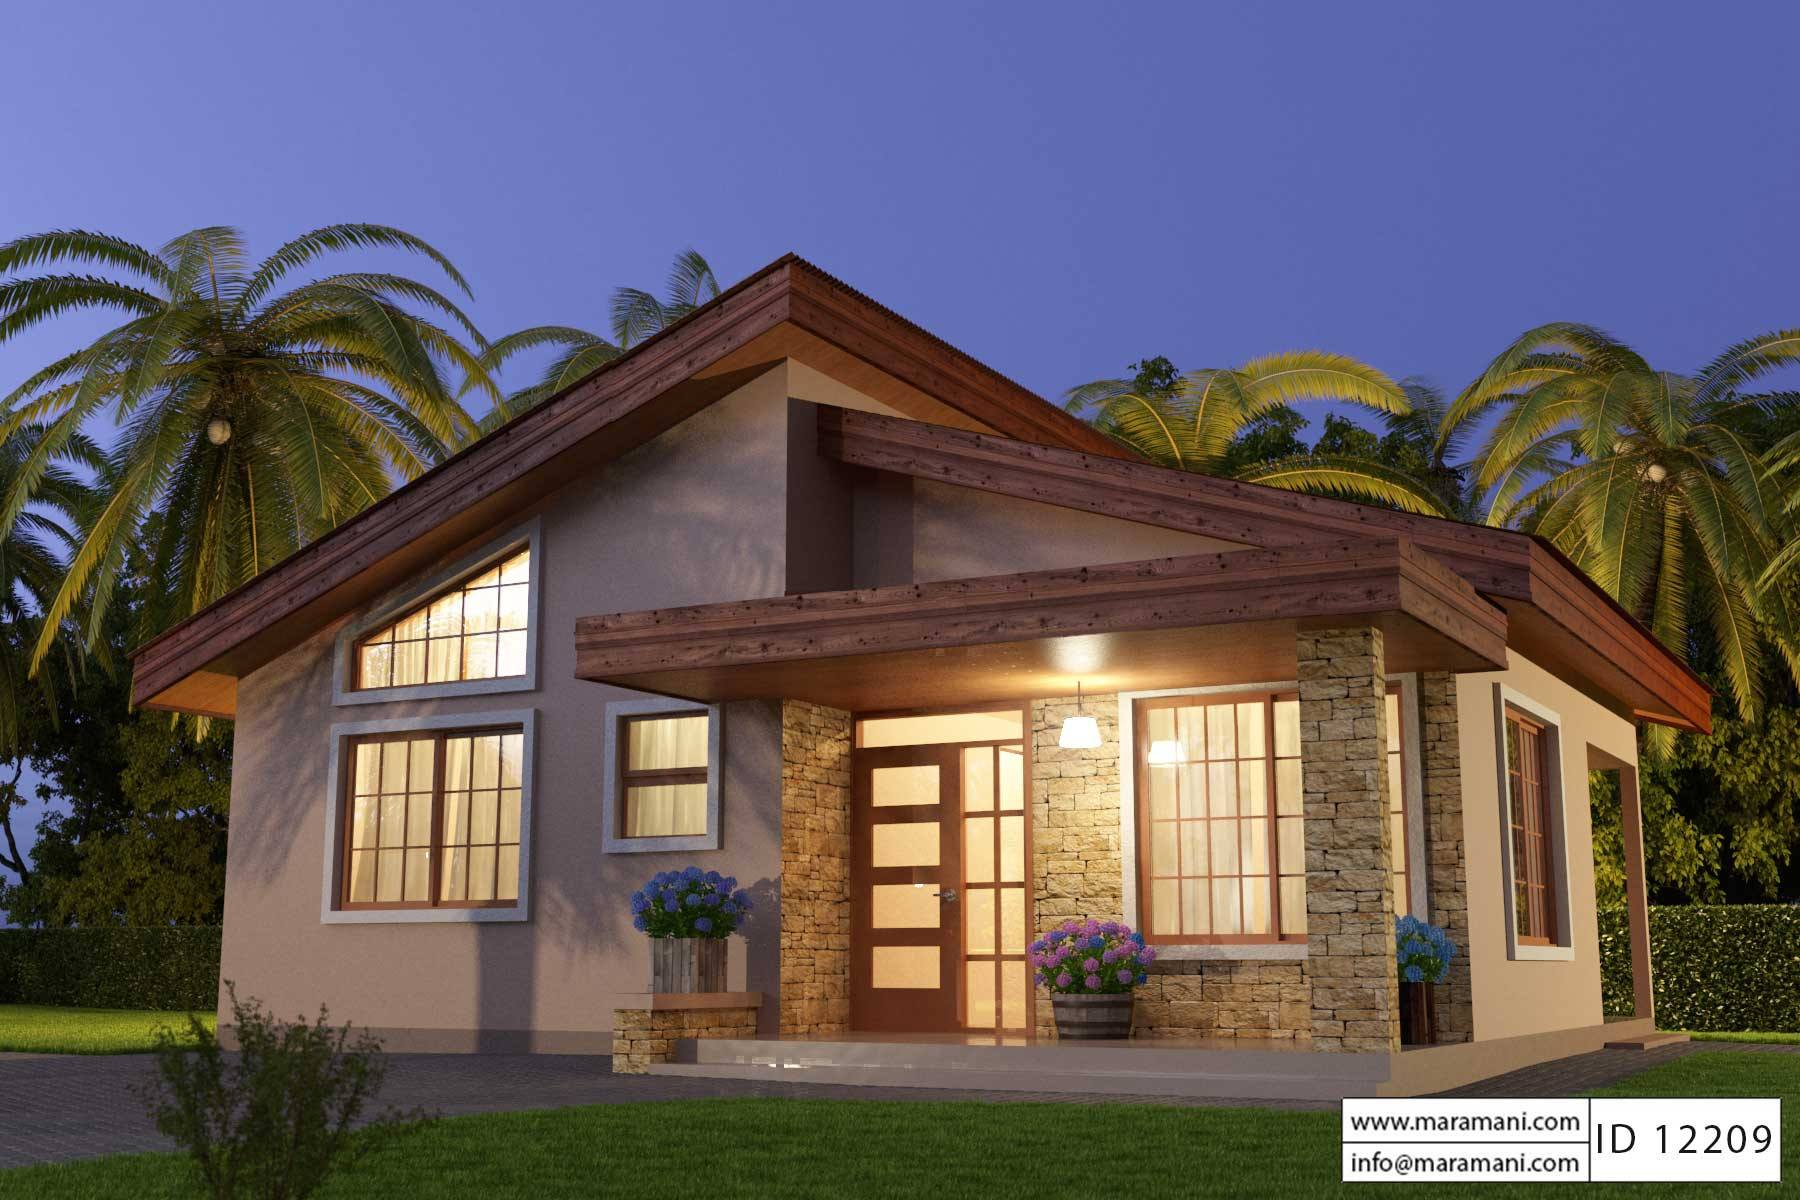 Unique small house plan id12209 floor plans by maramani for 2 bedroom houseplans